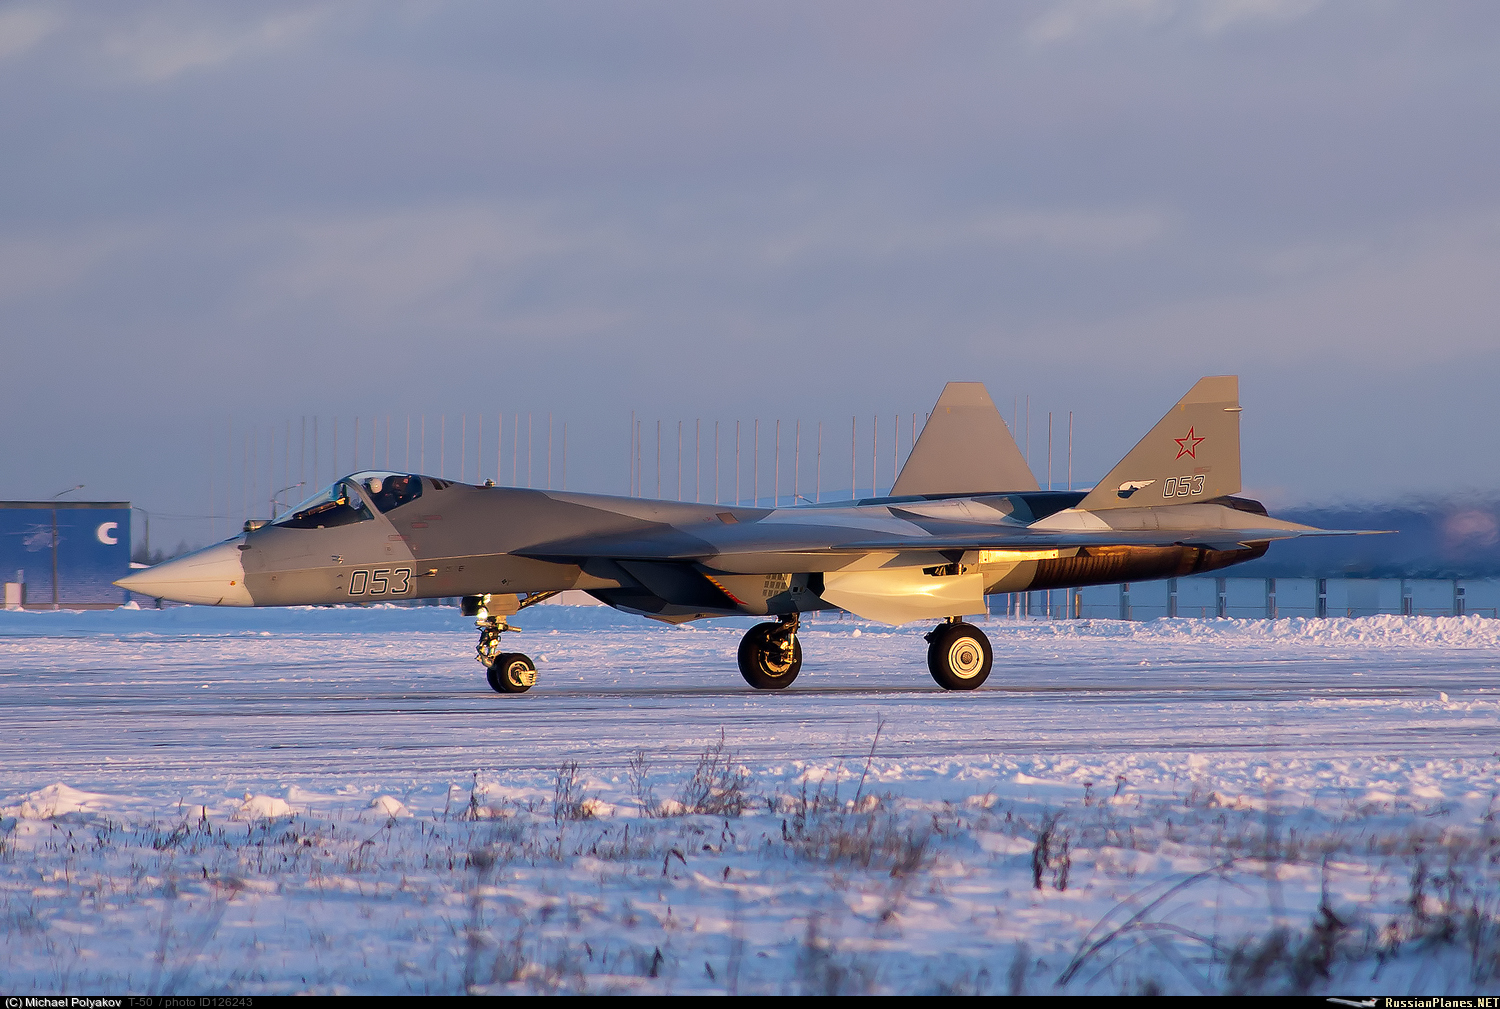 http://russianplanes.net/images/to127000/126243.jpg